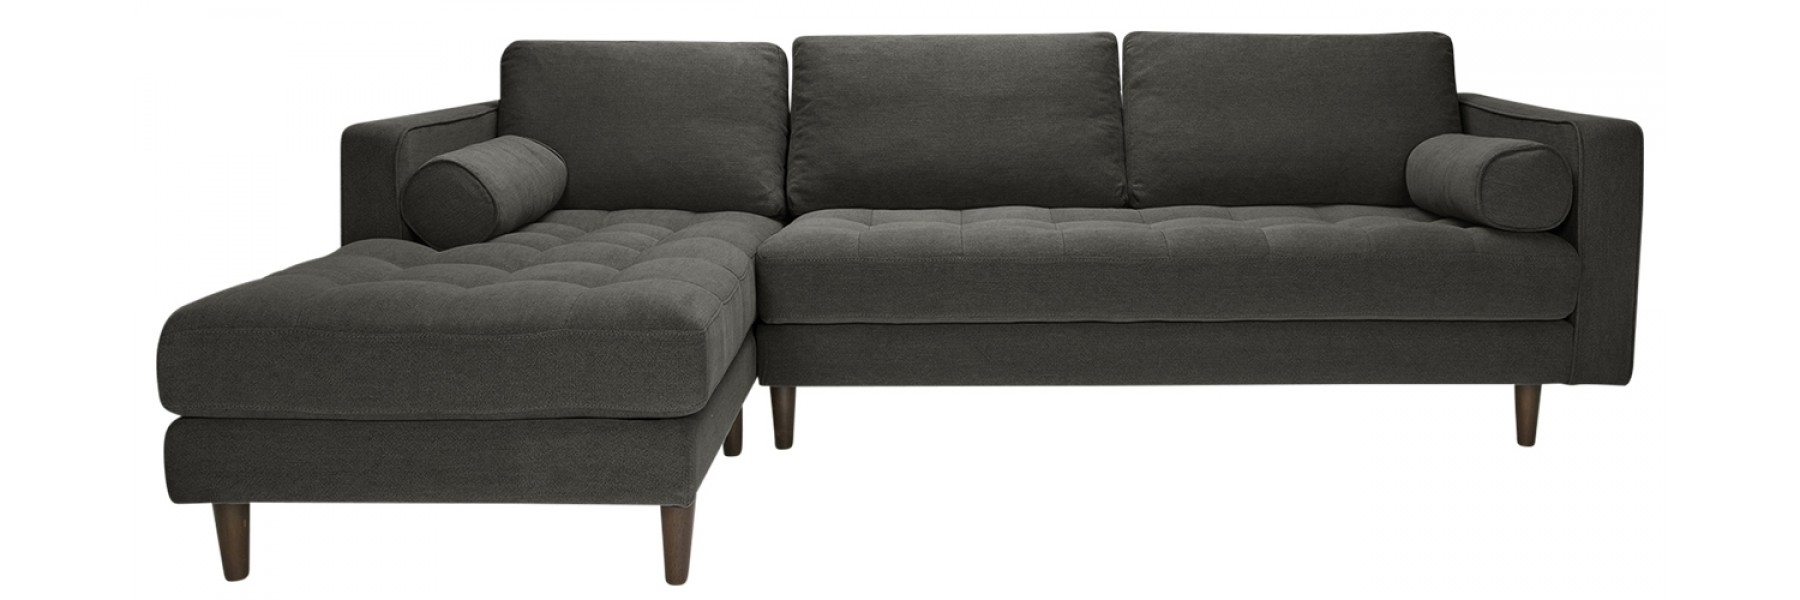 Sawyer Laf Sectional Stoned Slate with Nico Grey Sectionals With Left Facing Storage Chaise (Image 25 of 30)